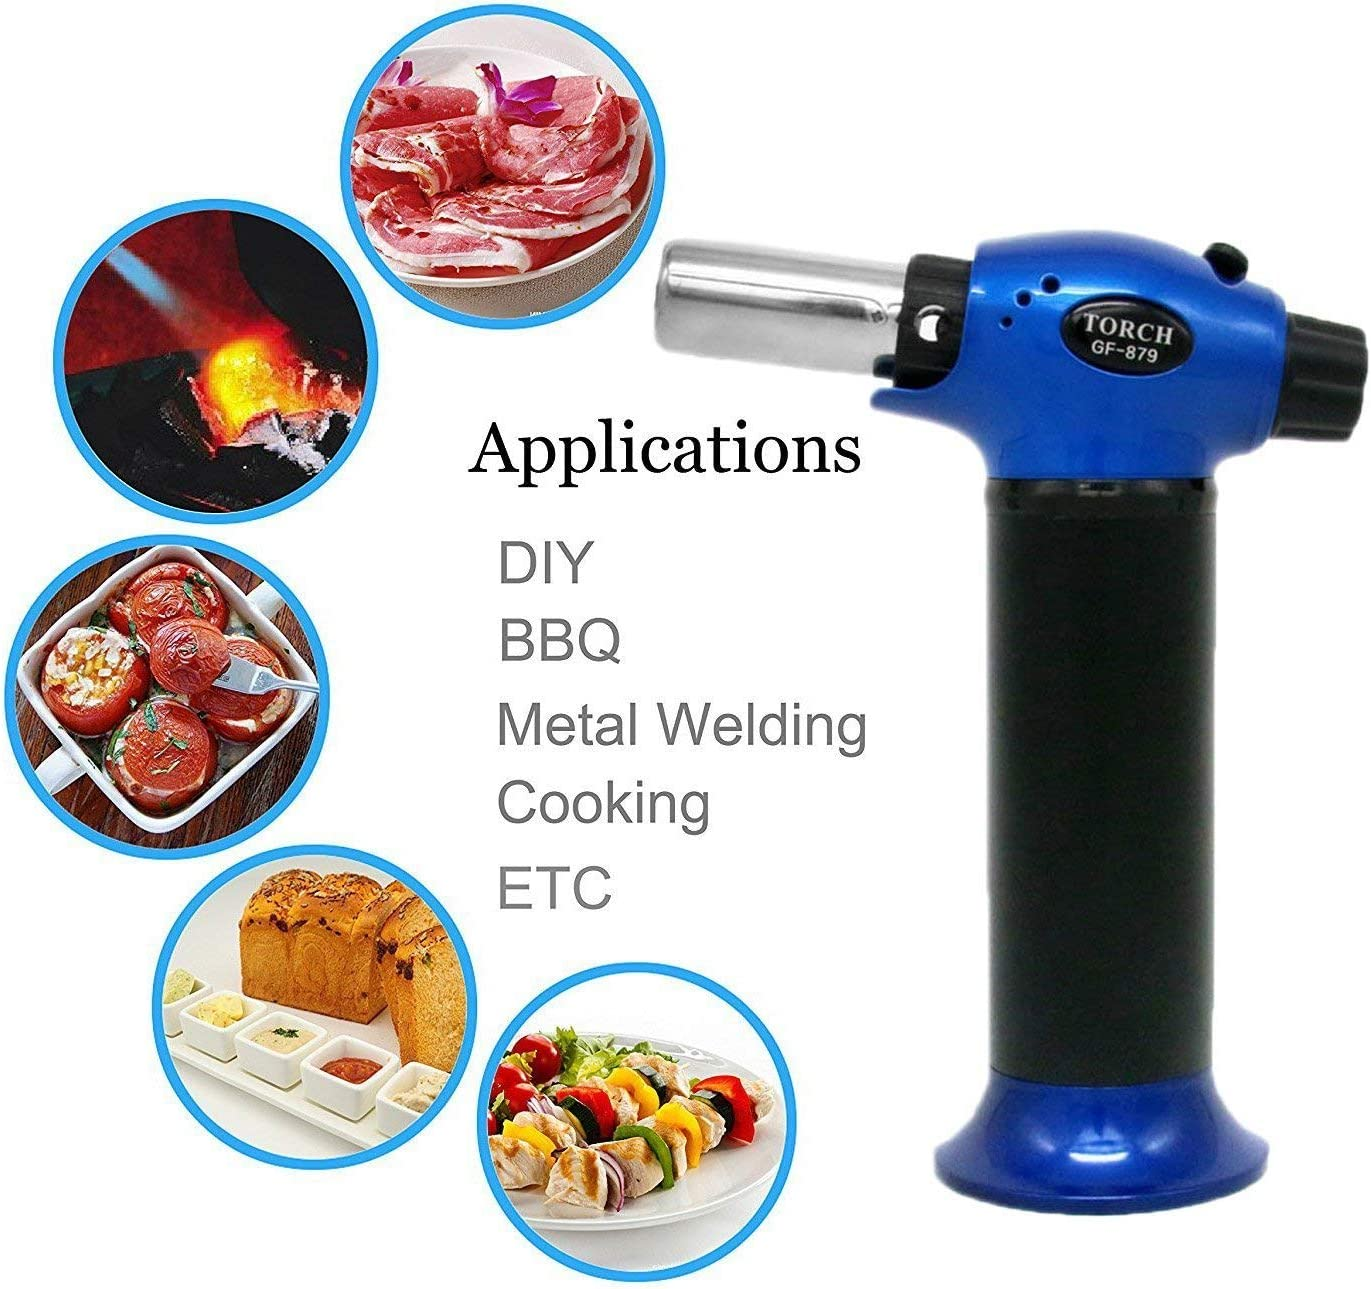 Seafood BBQ and Baking Meat Refillable Kitchen Blow Torch with Safety Lock /& Adjustable Flame for Creme Brulee AMRIU GF-879 Micro Butane Torch Lighter